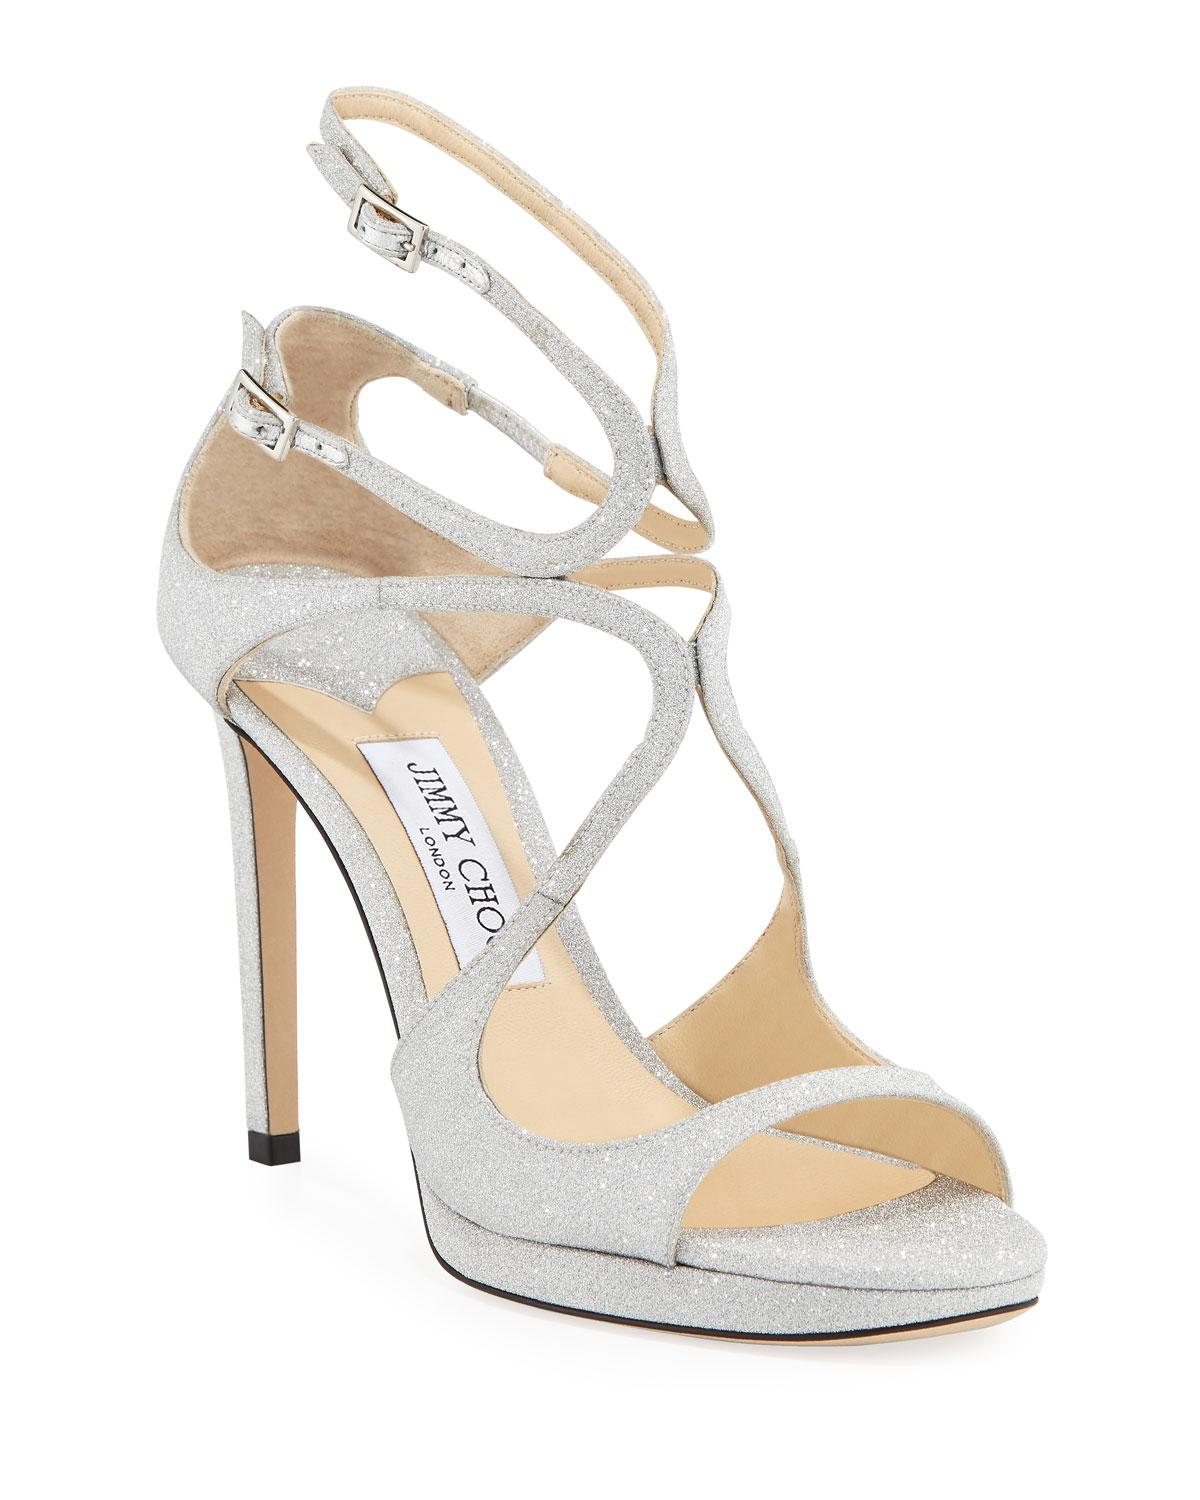 1de21da8a83a Lyst - Jimmy Choo Lance Glitter 100mm Platform Sandals in Metallic